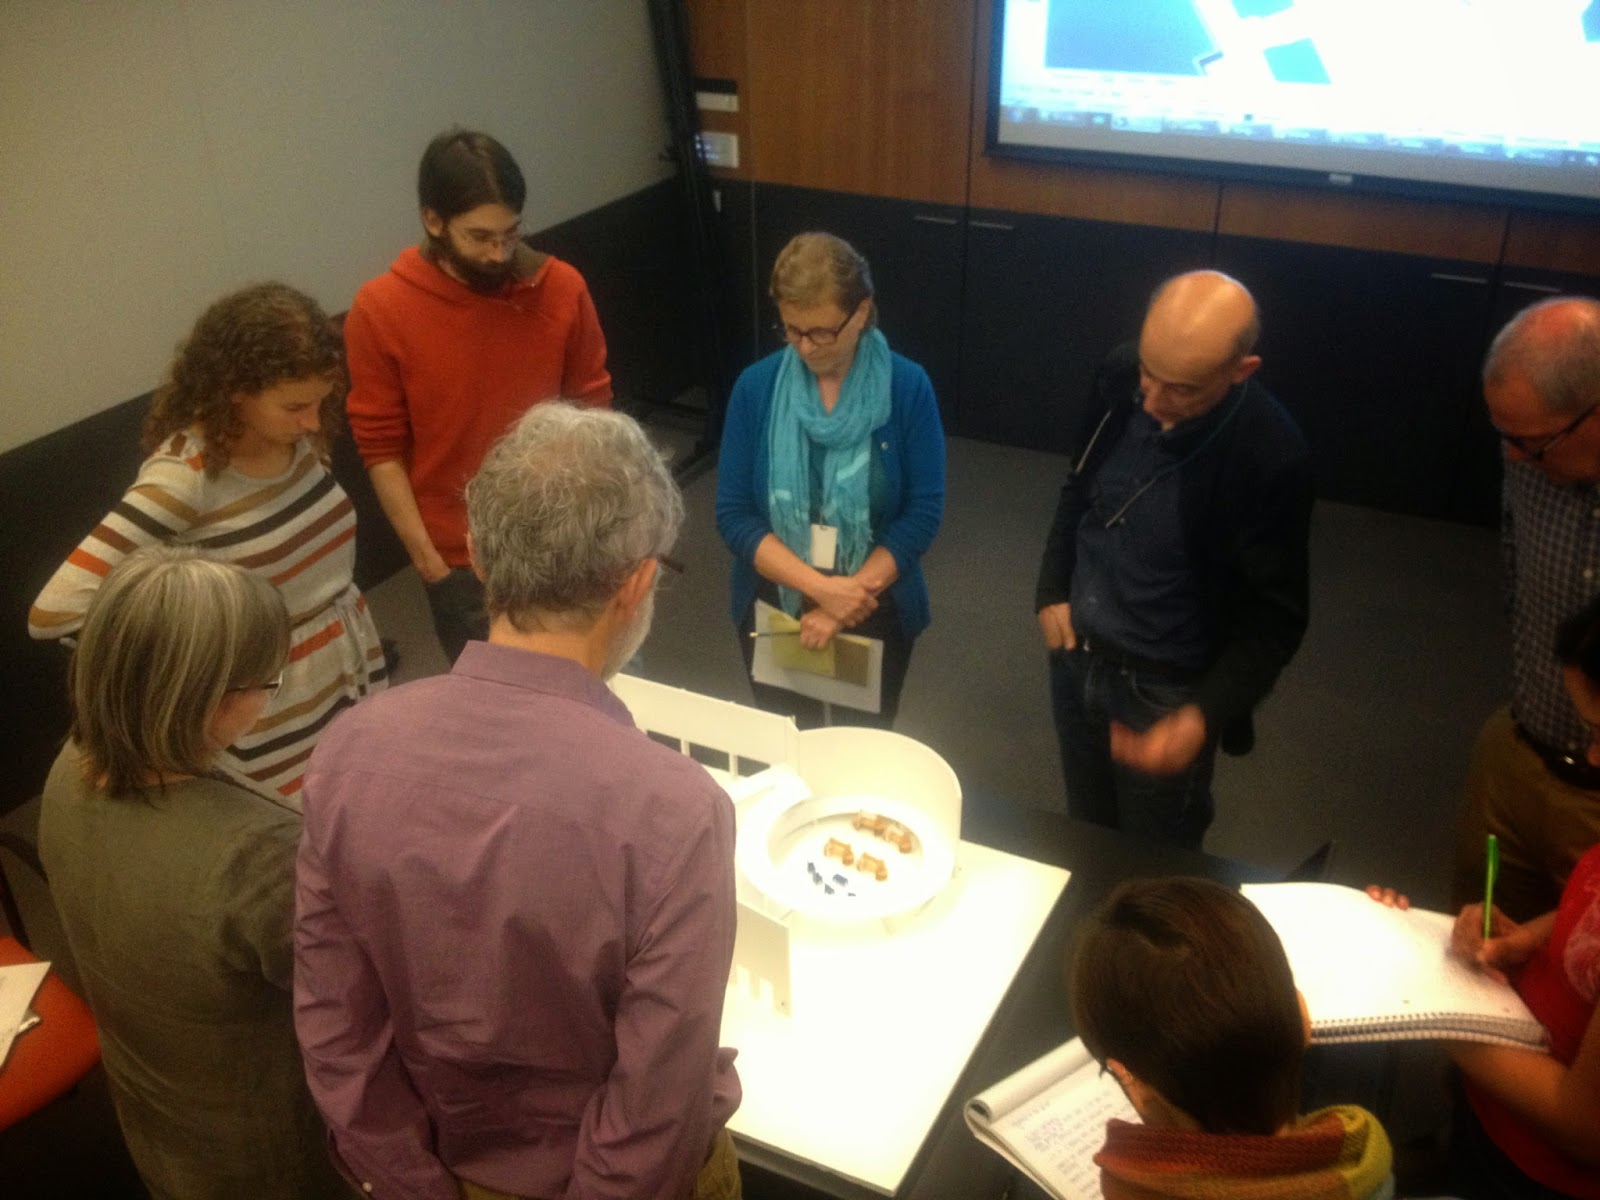 A foam core model is sitting on a table as Board Members gather around to evaluate and discuss the plan with Longmore institute staff members.